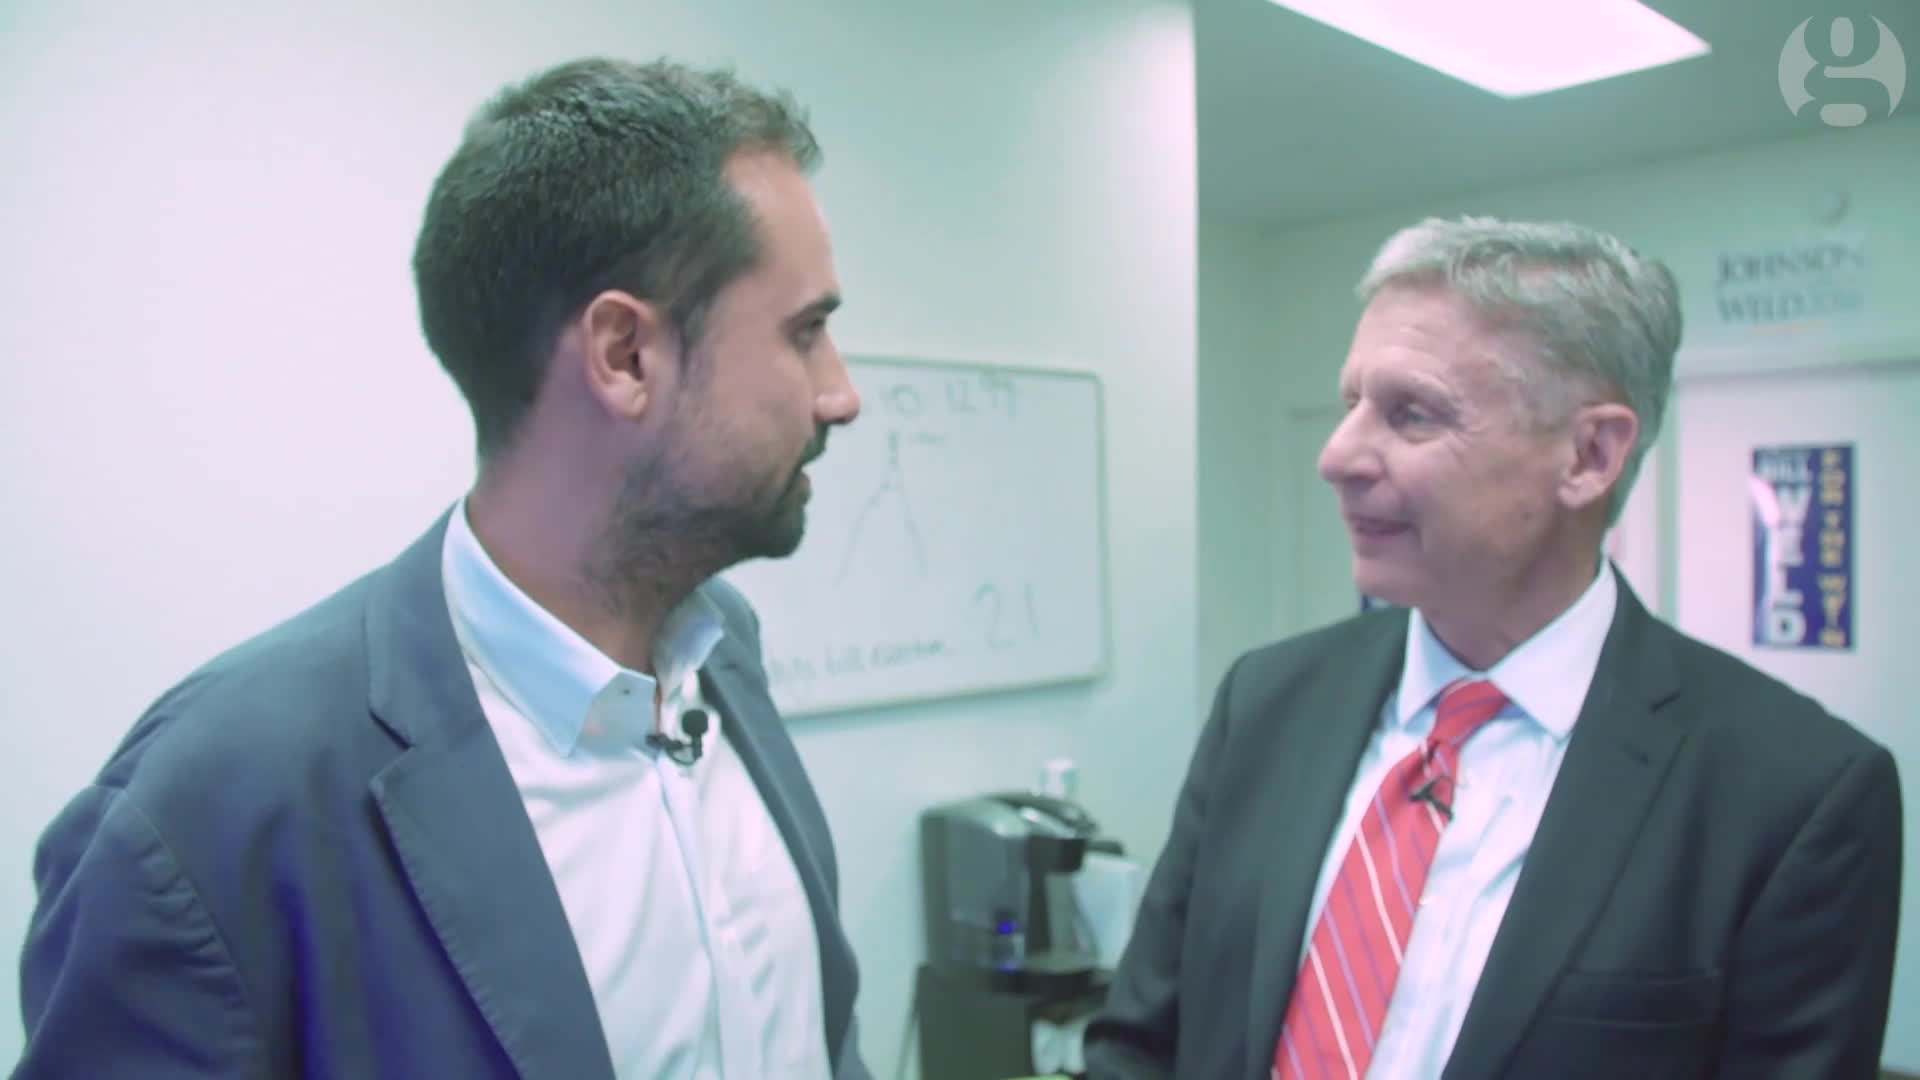 gary johnson, libertarian, trump, Gary Johnson loses his cool when pressed on his disputed tax policy   US Elections 2016 GIFs